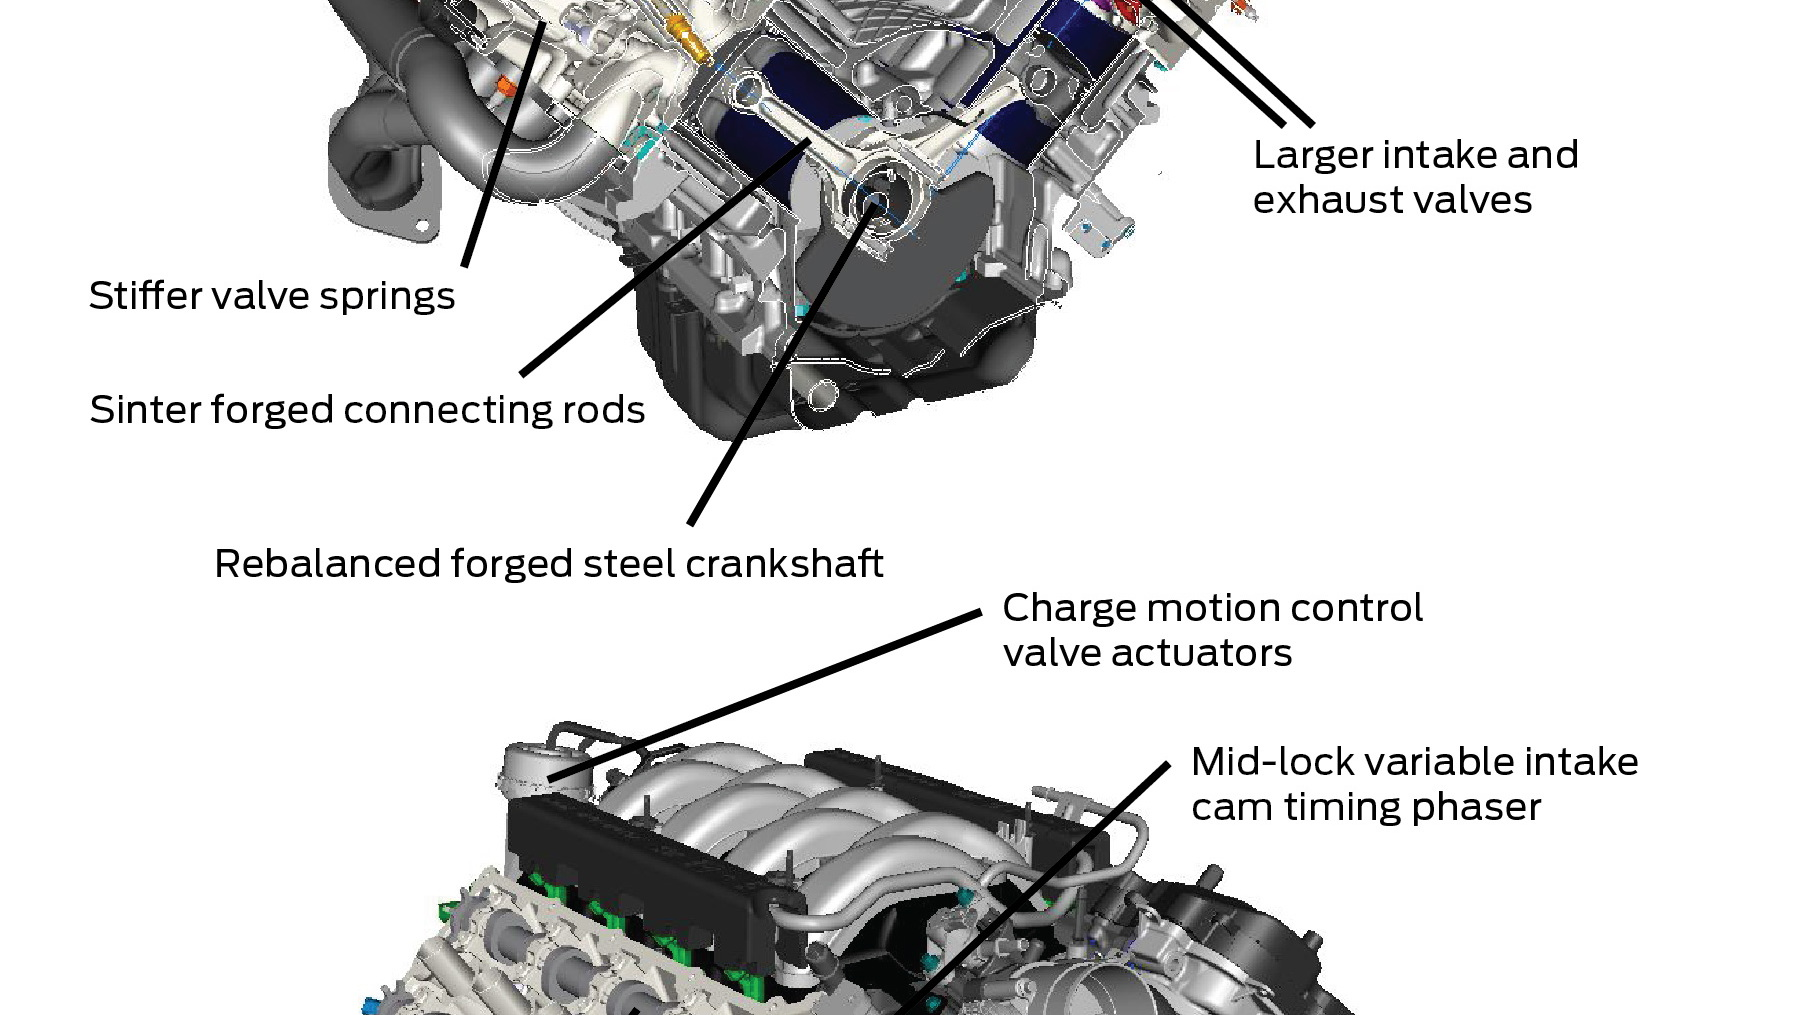 Ford Mustang Hemi Engine